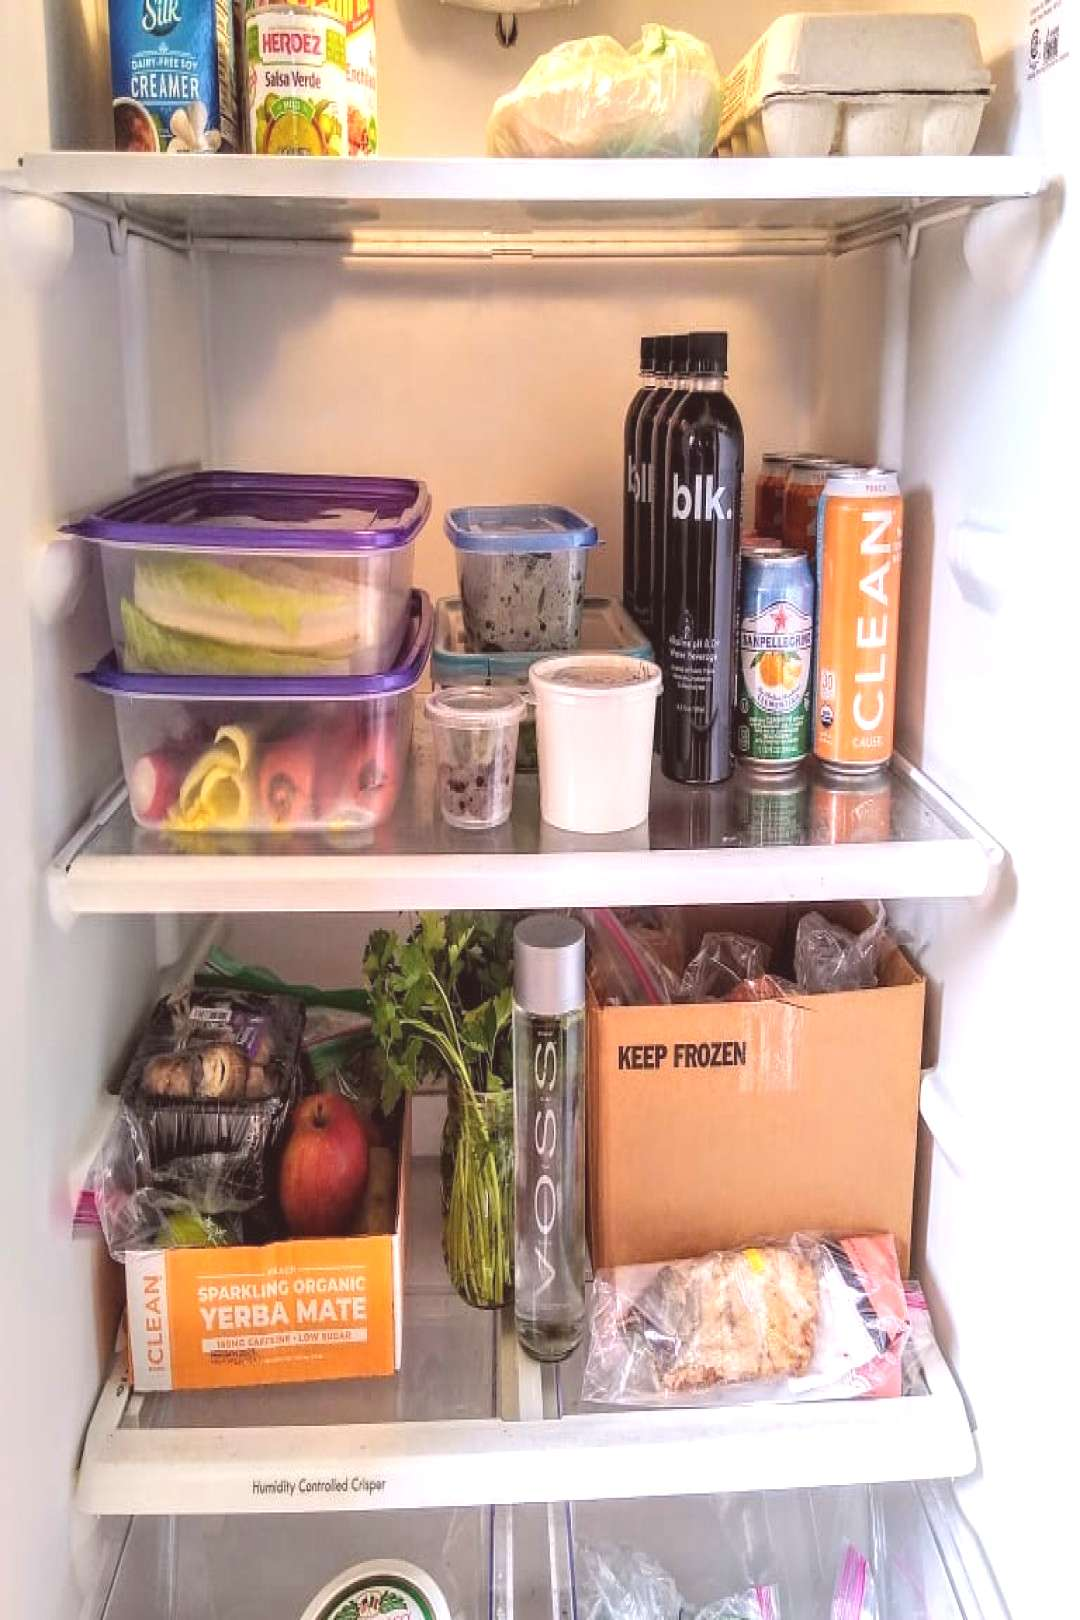 You know in CRIBS when they open the fridge? I love looking in pe